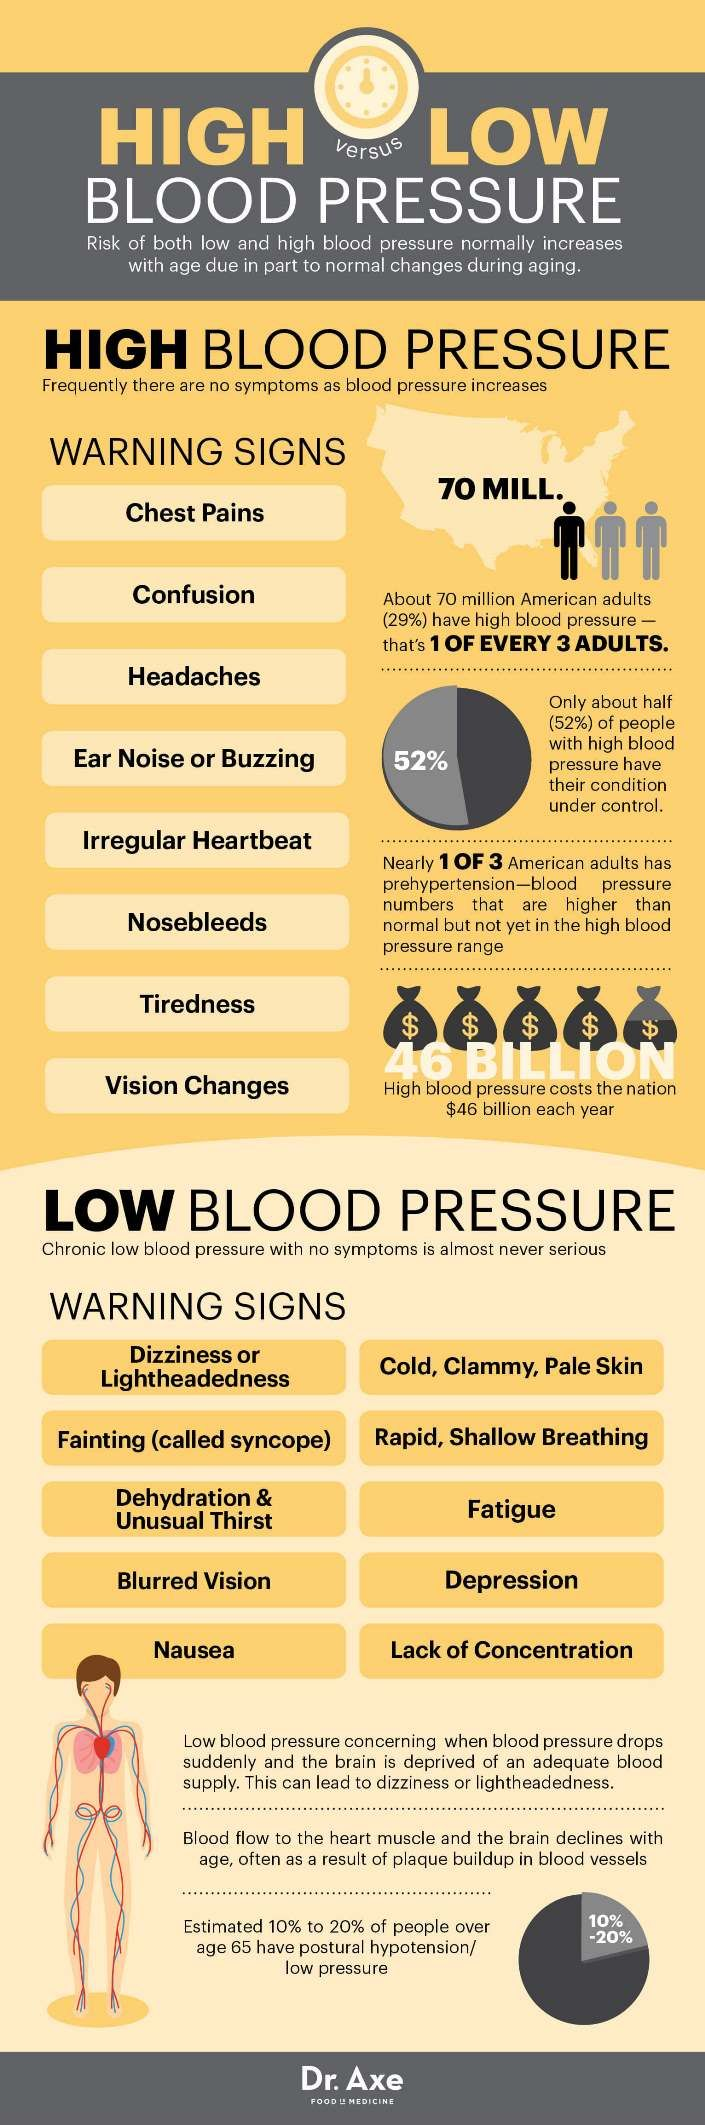 example of high blood pressure